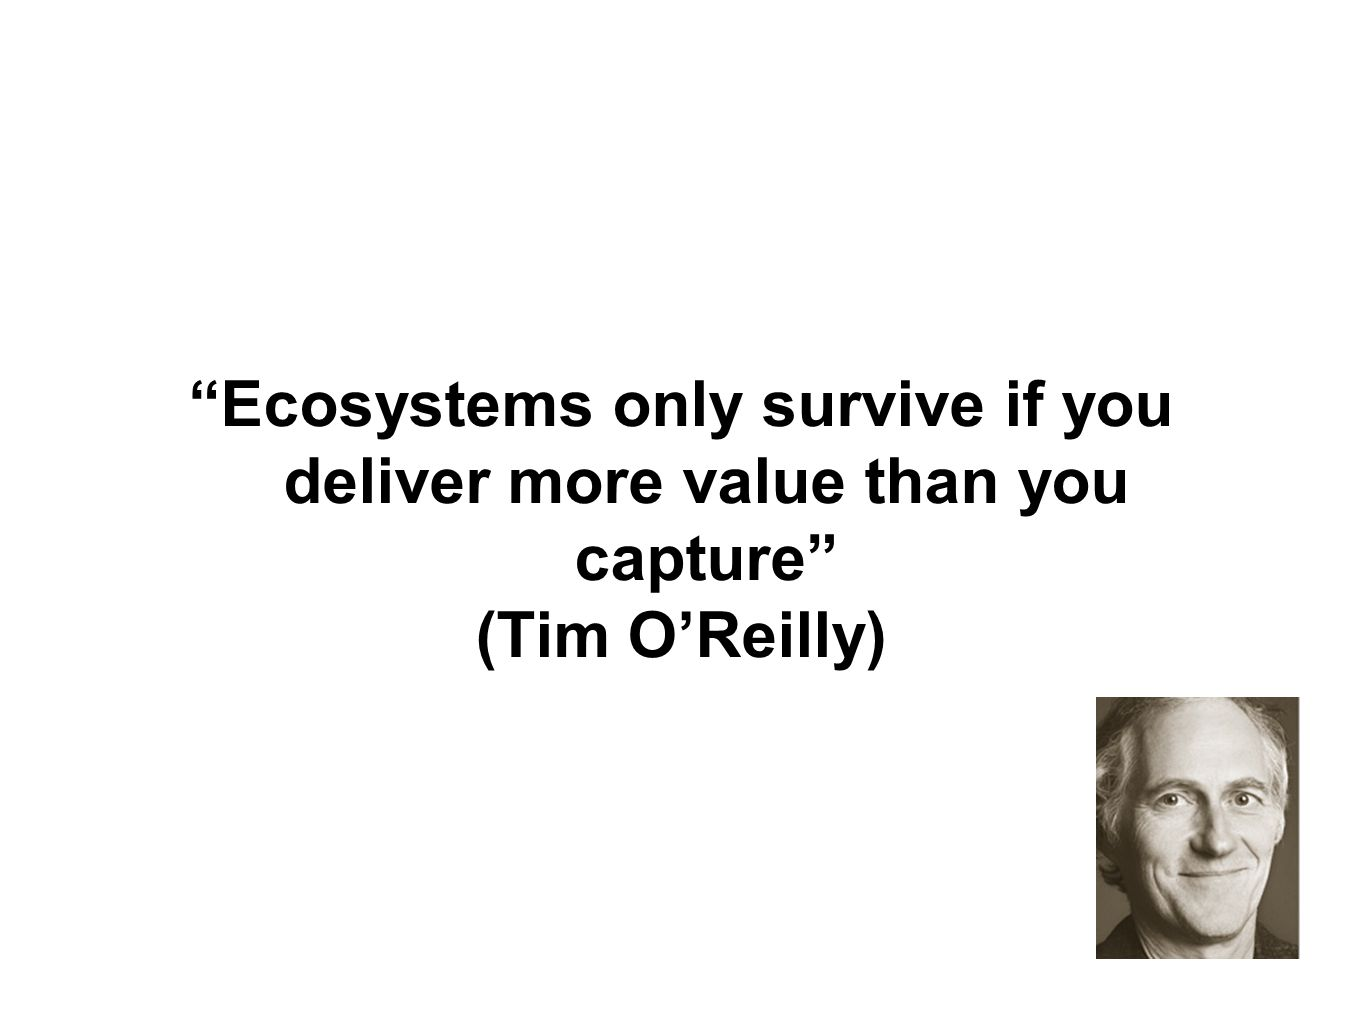 Ecosystems only survive if you deliver more value than you capture (Tim OReilly)